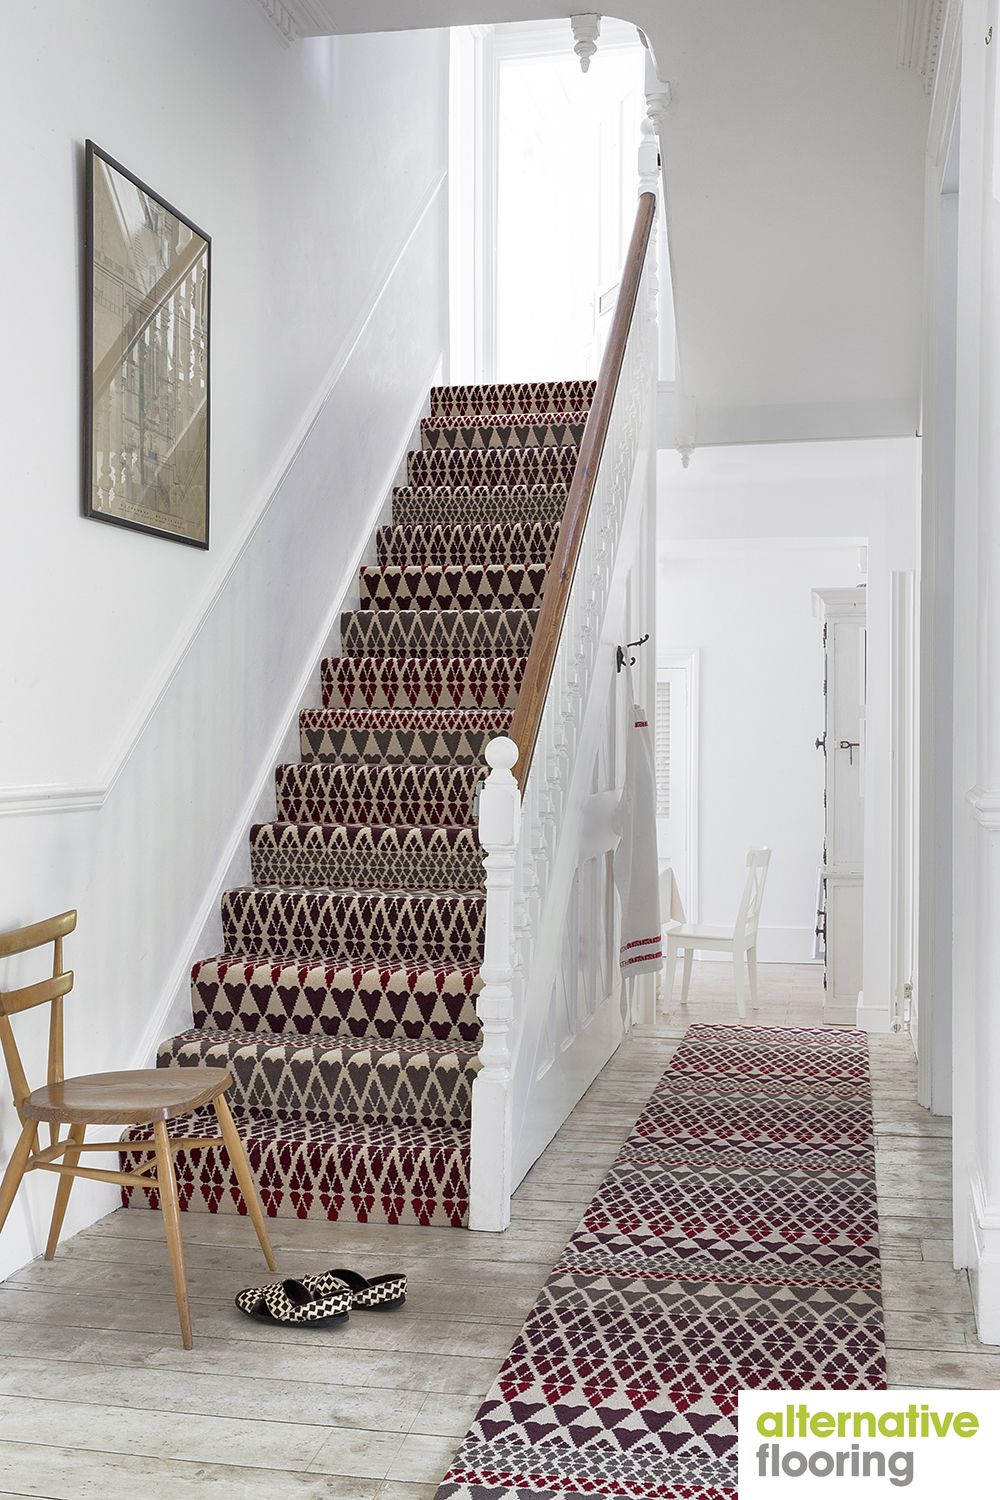 Charming We Have Been Collaborating With The First Cool Brands Carpet Company  Alternative Flooring On A New